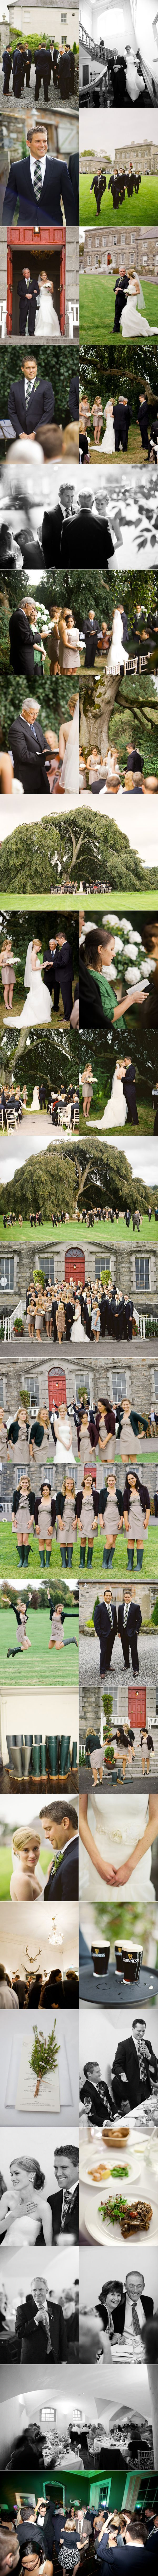 An Irish Wedding II